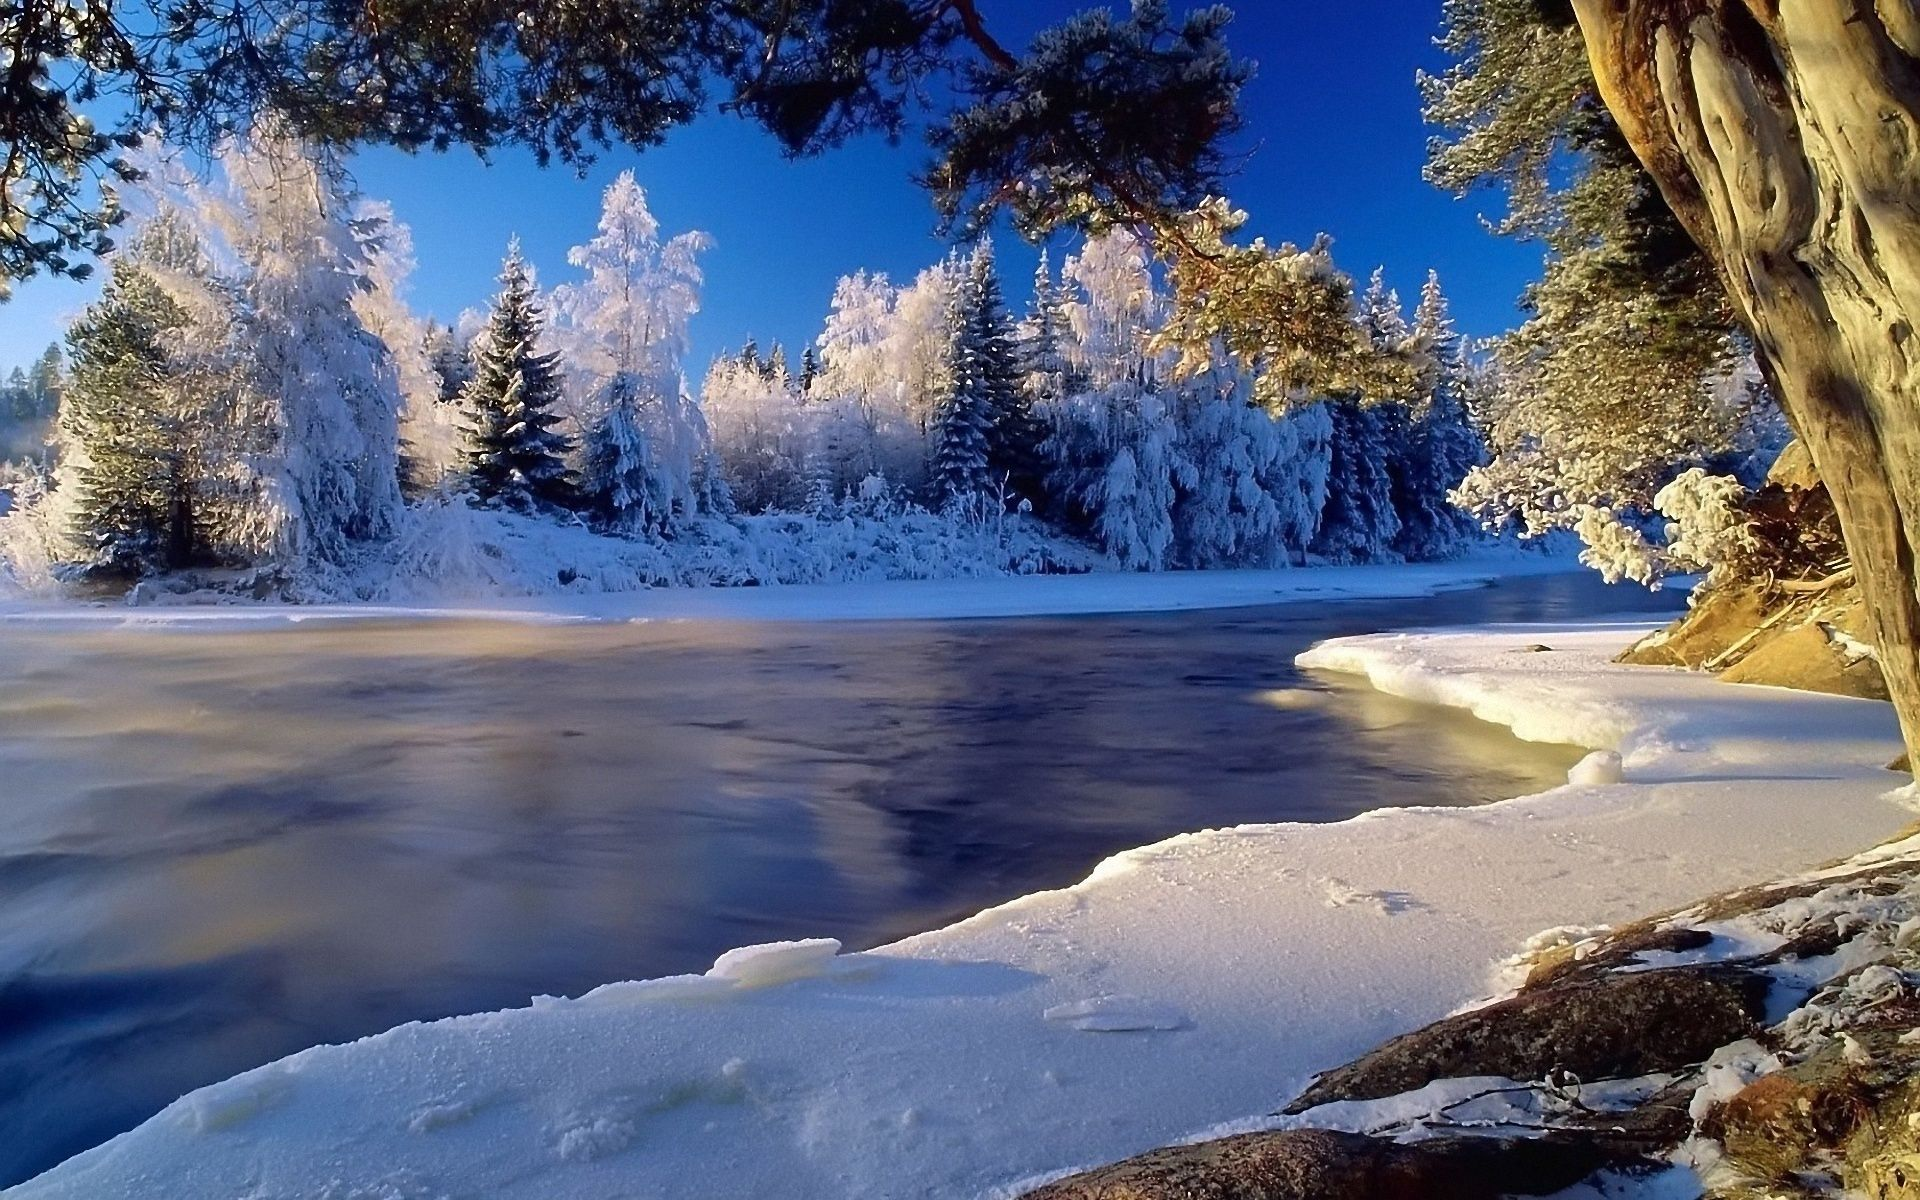 Winter Landscape Wallpaper HD